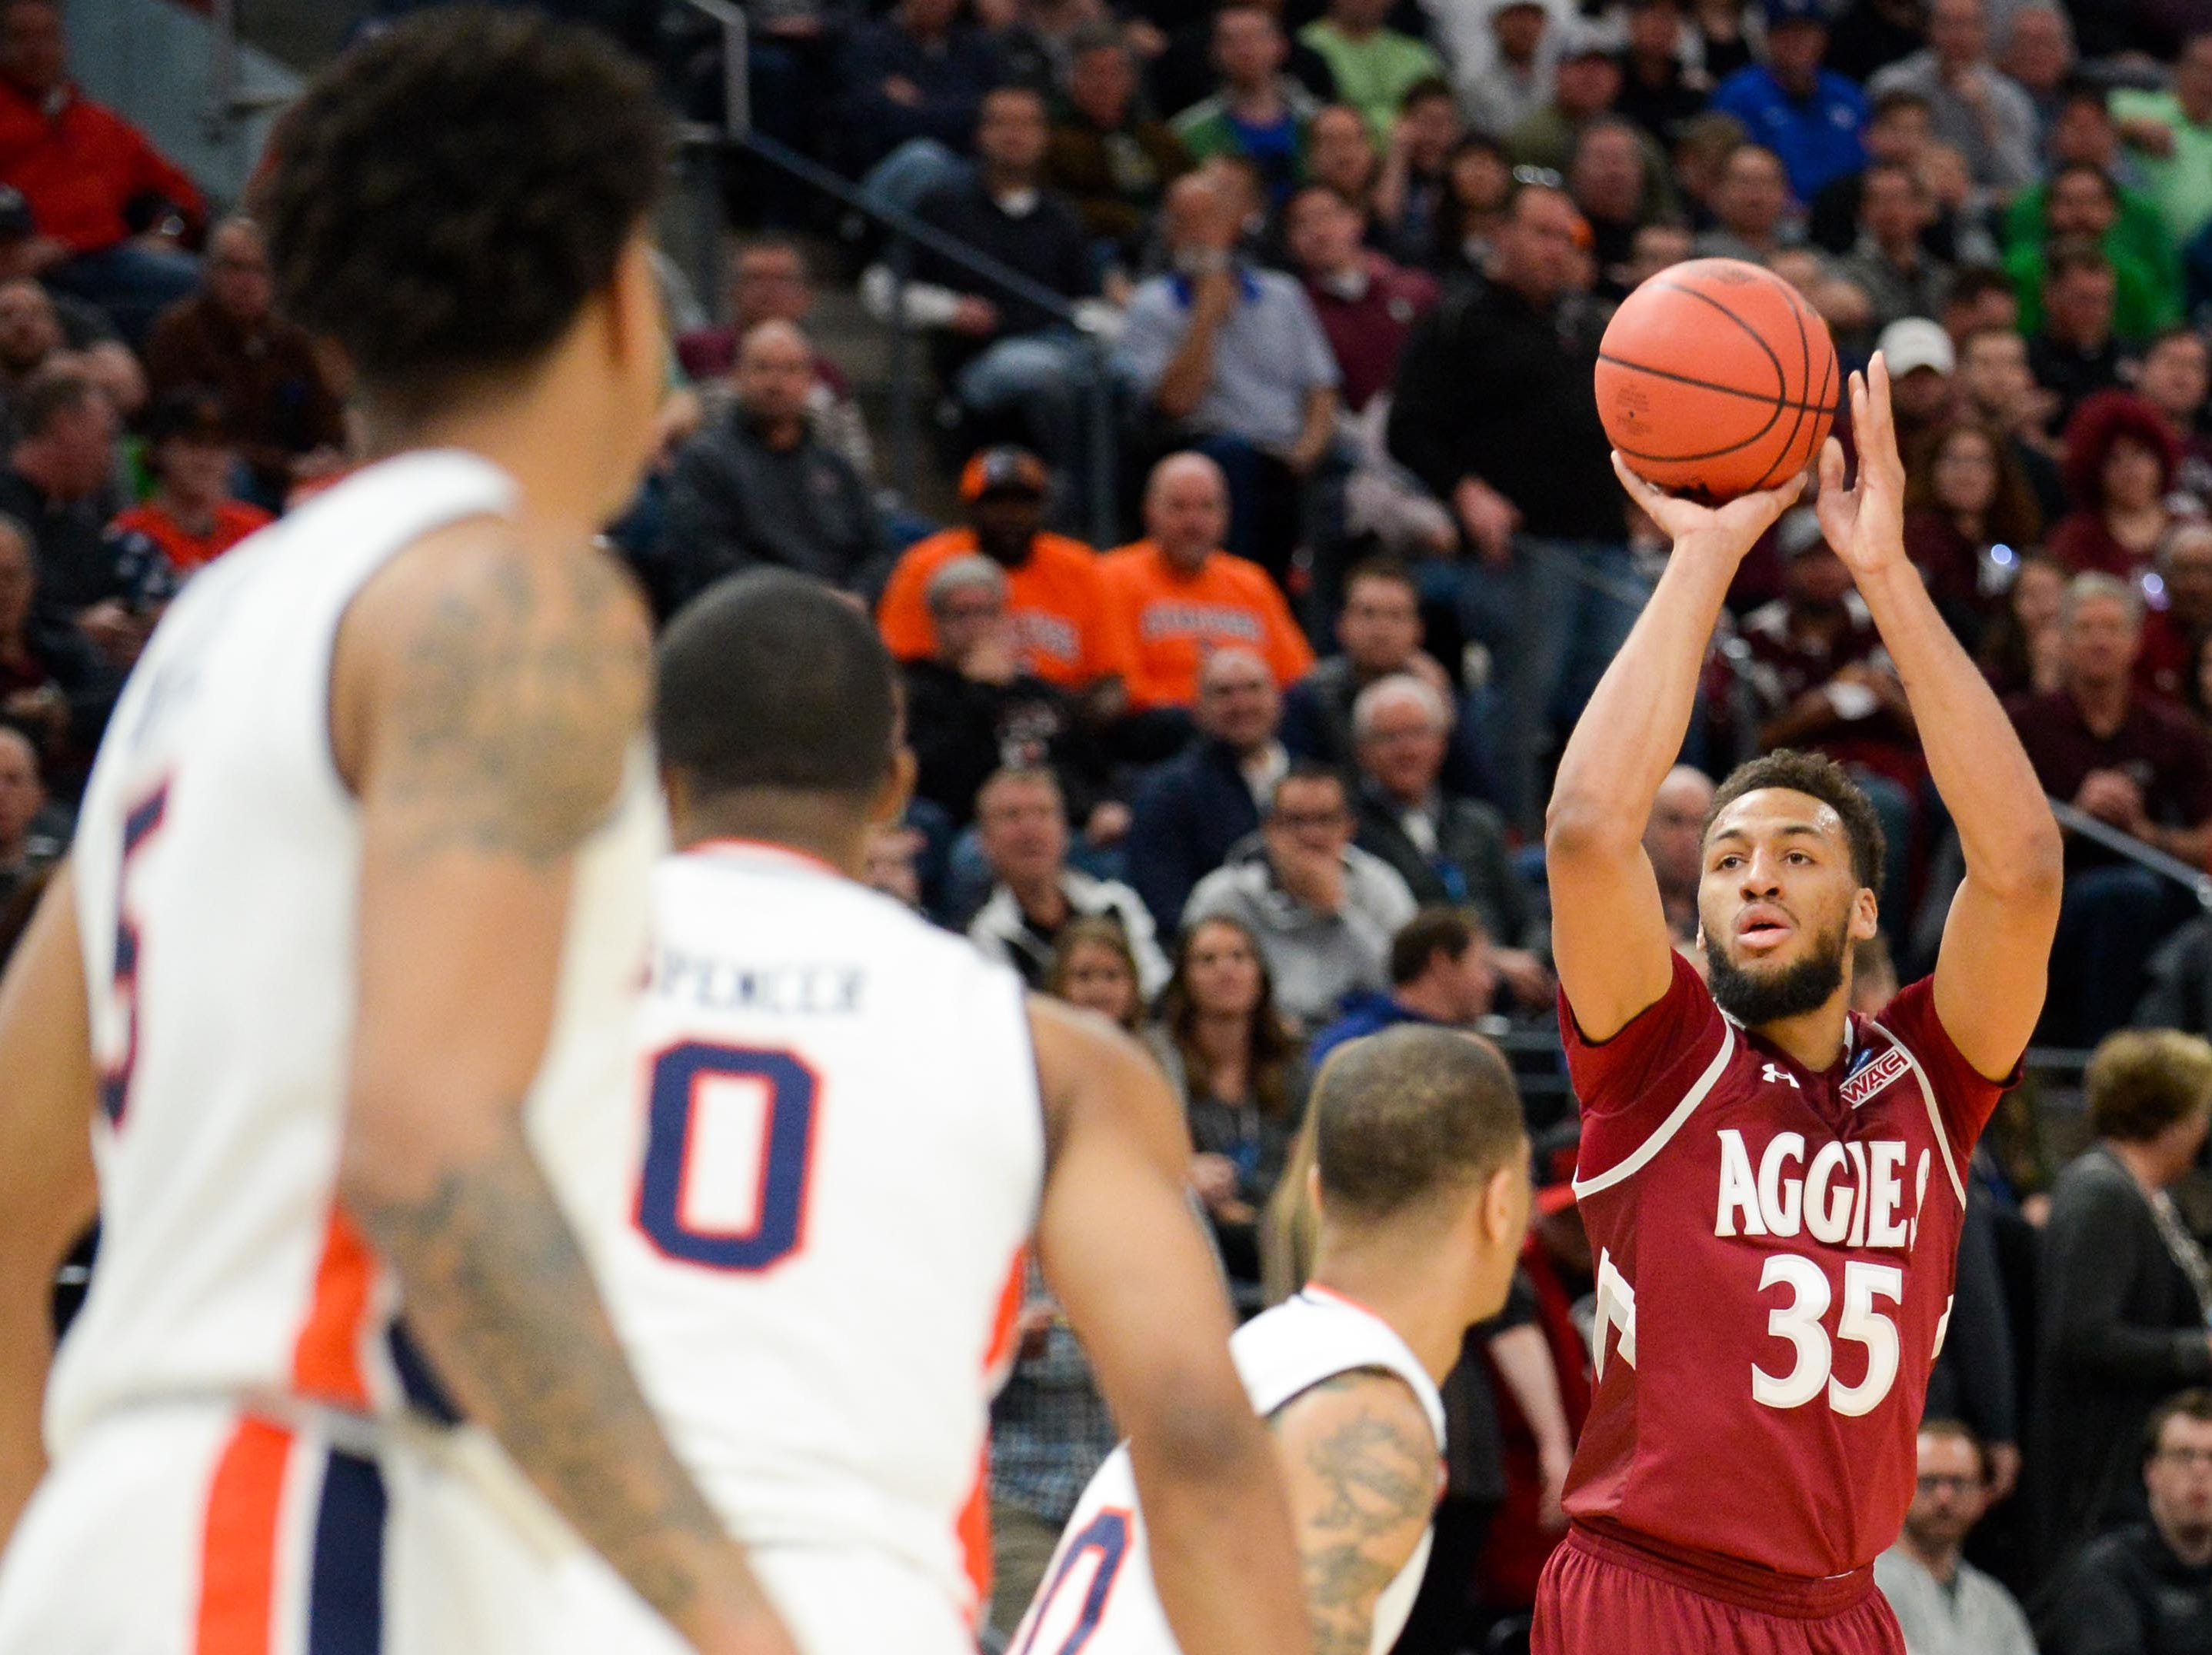 Mar 21, 2019; Salt Lake City, UT, USA; New Mexico State Aggies forward Johnny McCants (35) shoots over Auburn Tigers defense during the first half in the first round of the 2019 NCAA Tournament at Vivint Smart Home Arena. Mandatory Credit: Gary A. Vasquez-USA TODAY Sports